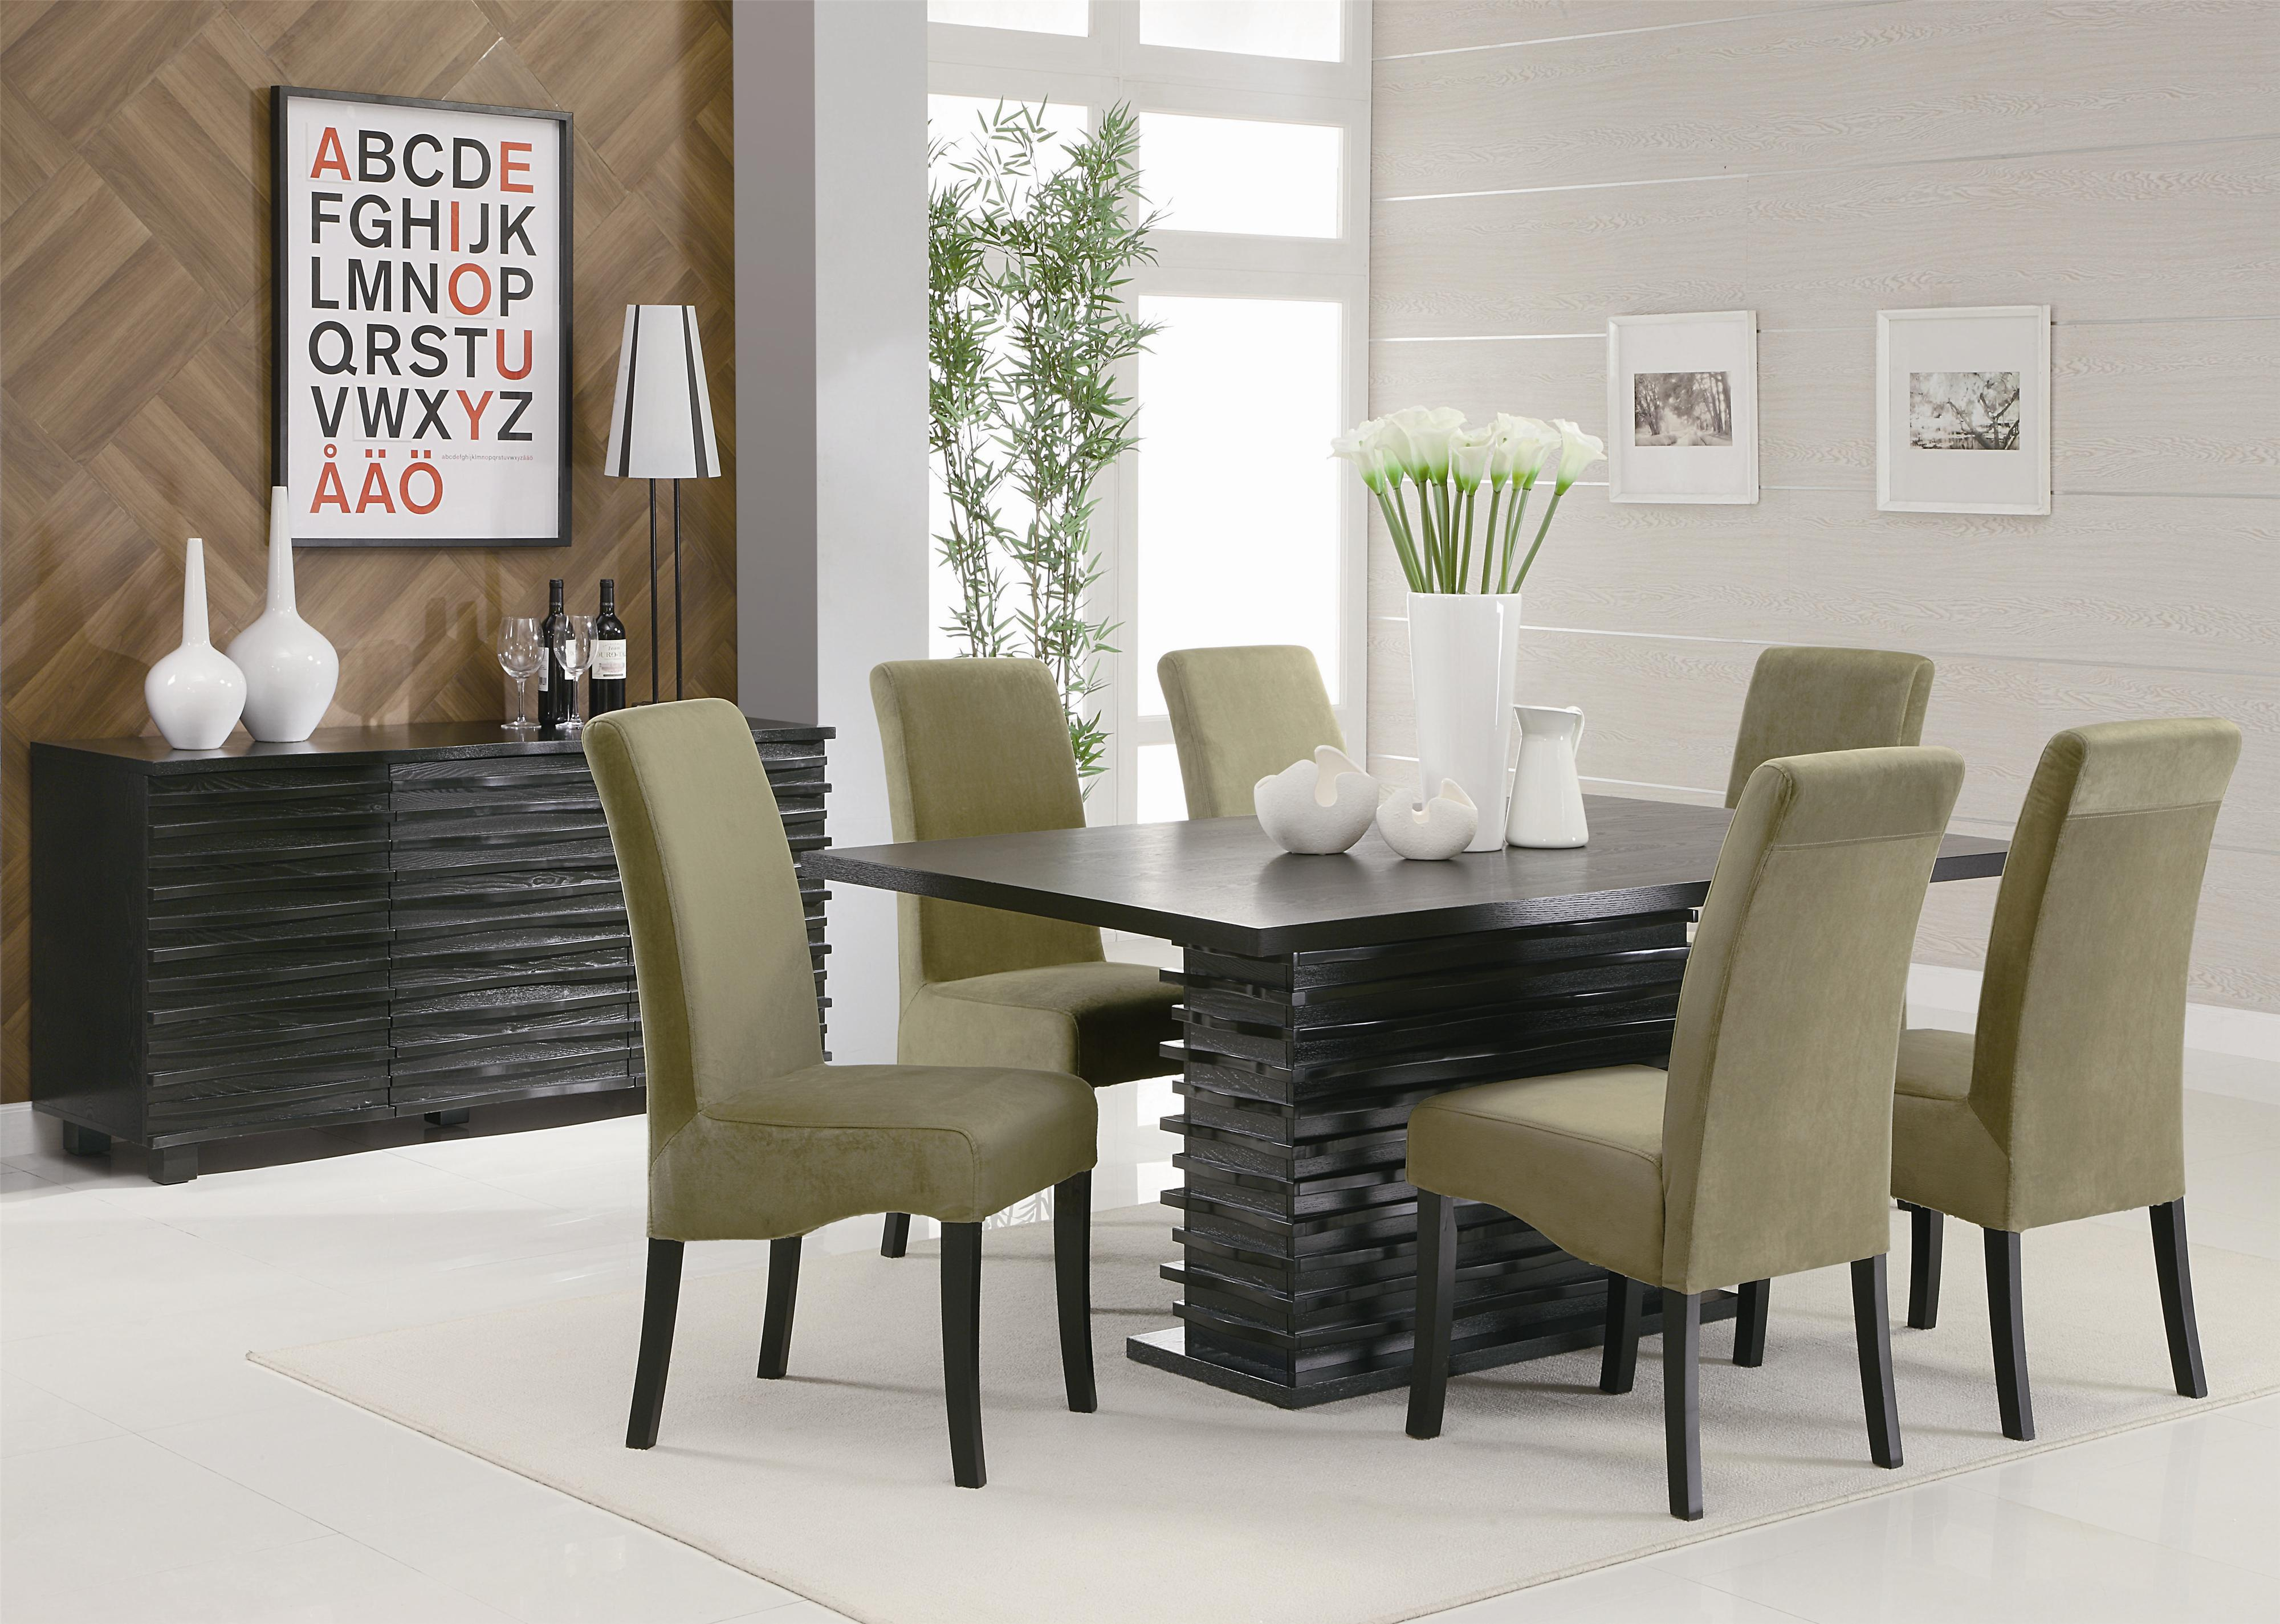 Admirable Stanton 102000 By Coaster Pedigo Furniture Coaster Download Free Architecture Designs Sospemadebymaigaardcom